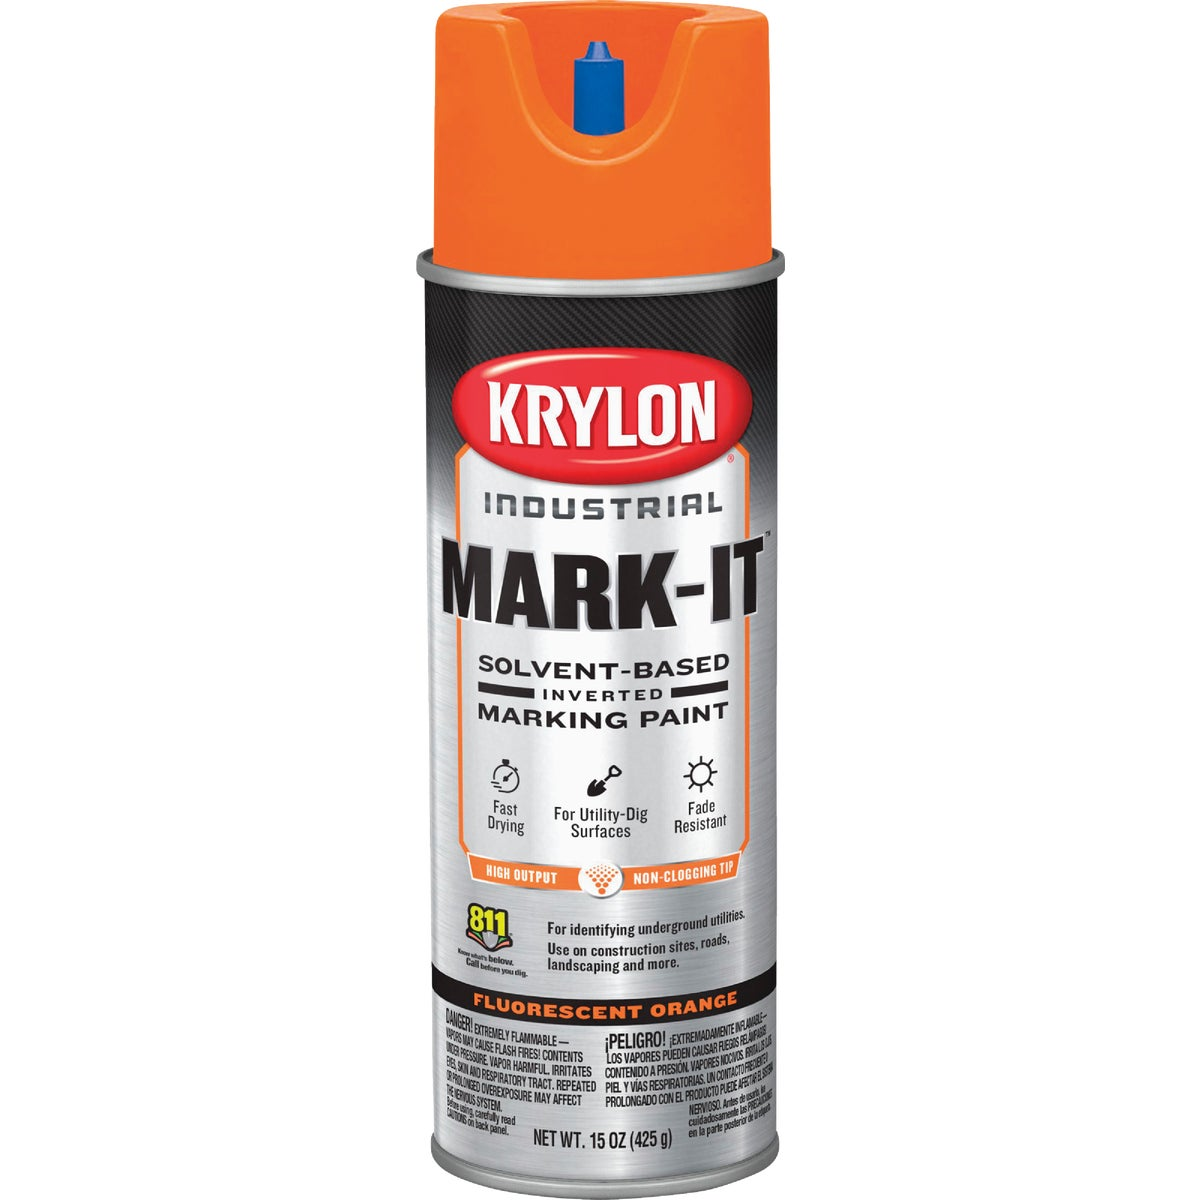 FLUOR ORNG MARKING PAINT - 7307 by Krylon/consumer Div